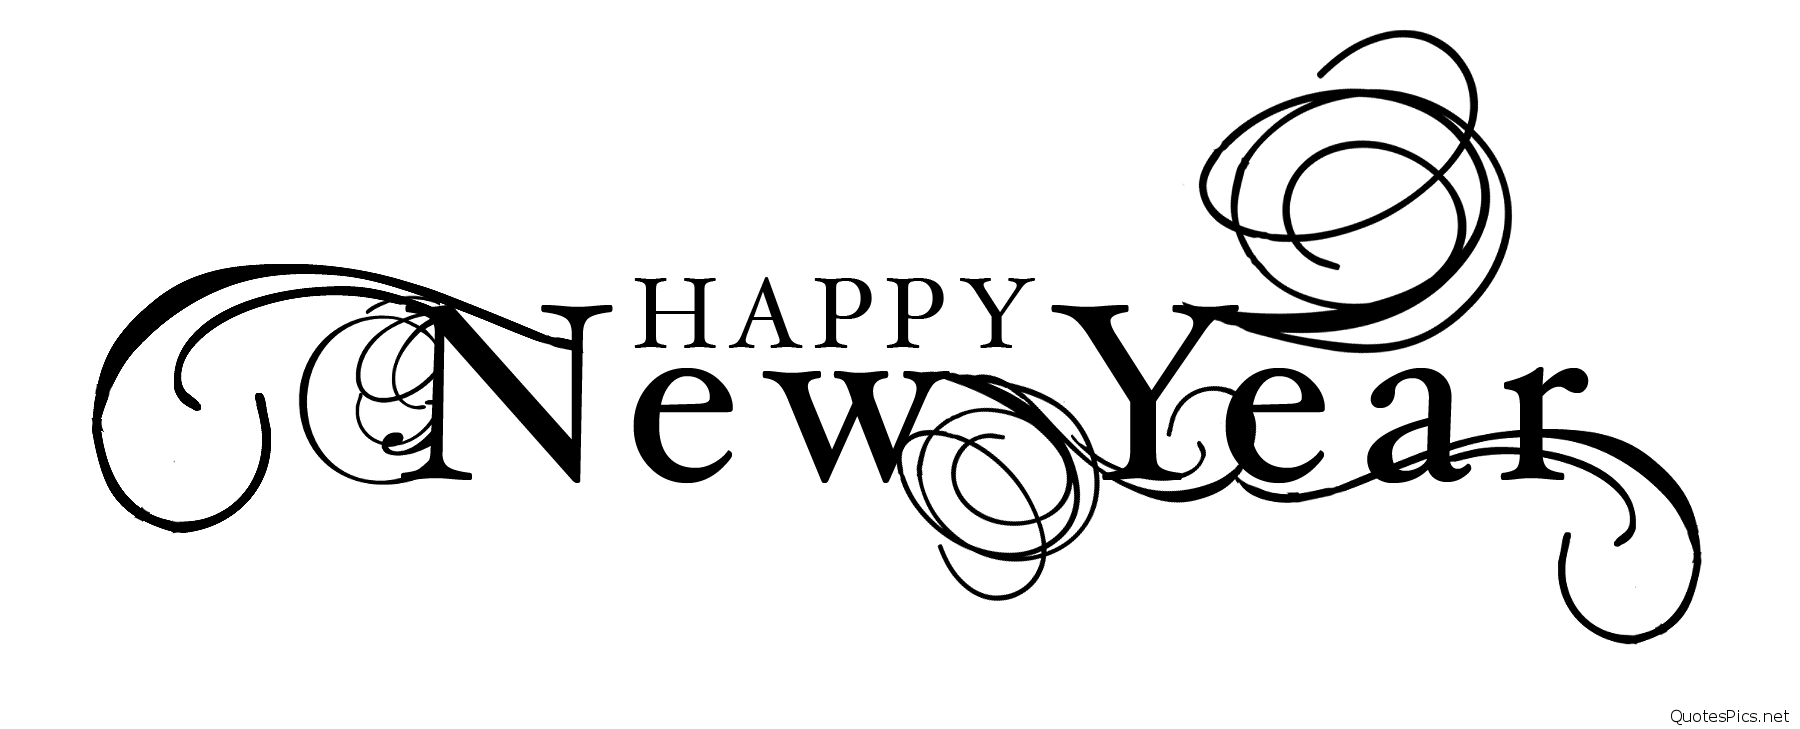 Elegant Happy New Year Png 5. Happy_new_year_2013_013_o. To All